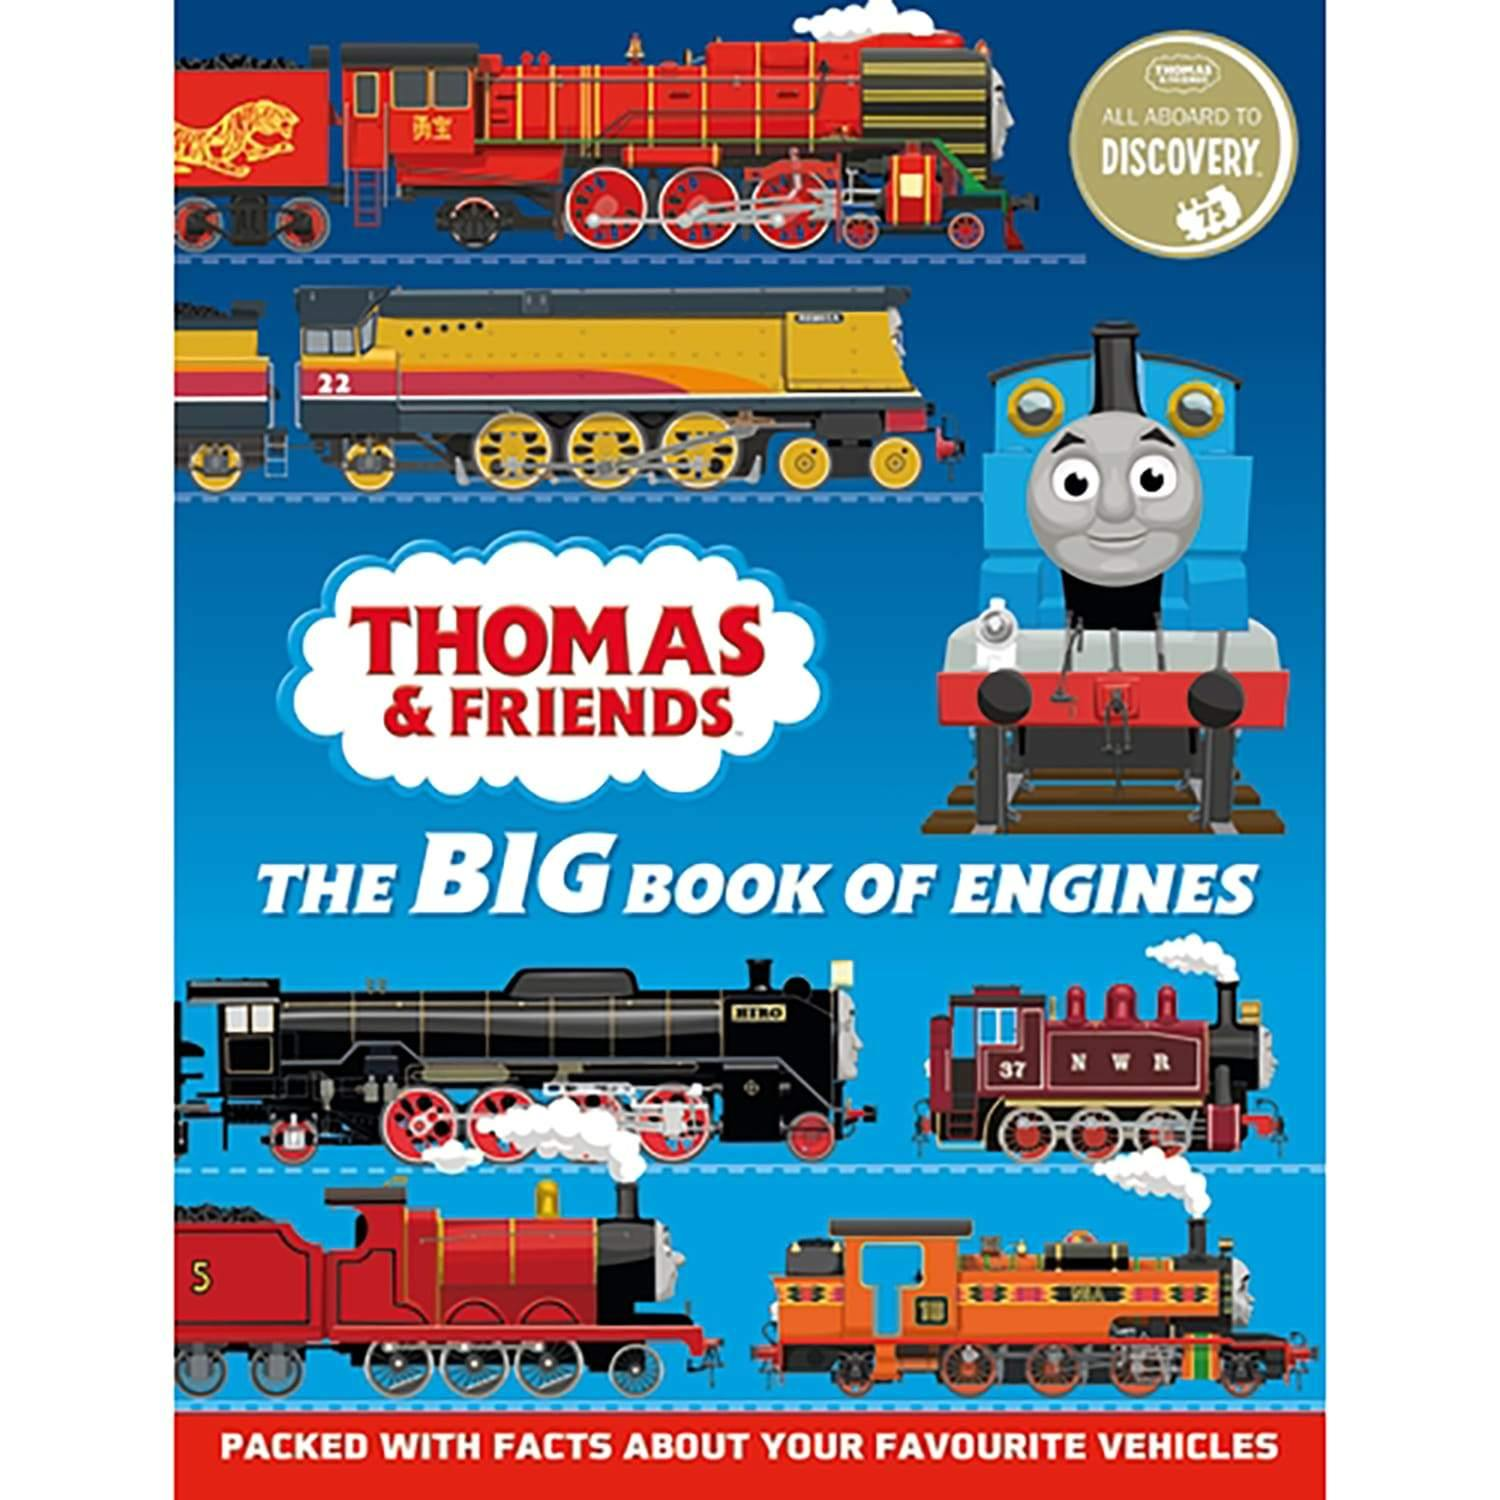 Big Book of Engines 75th Anniversary edition Thomas & Friends